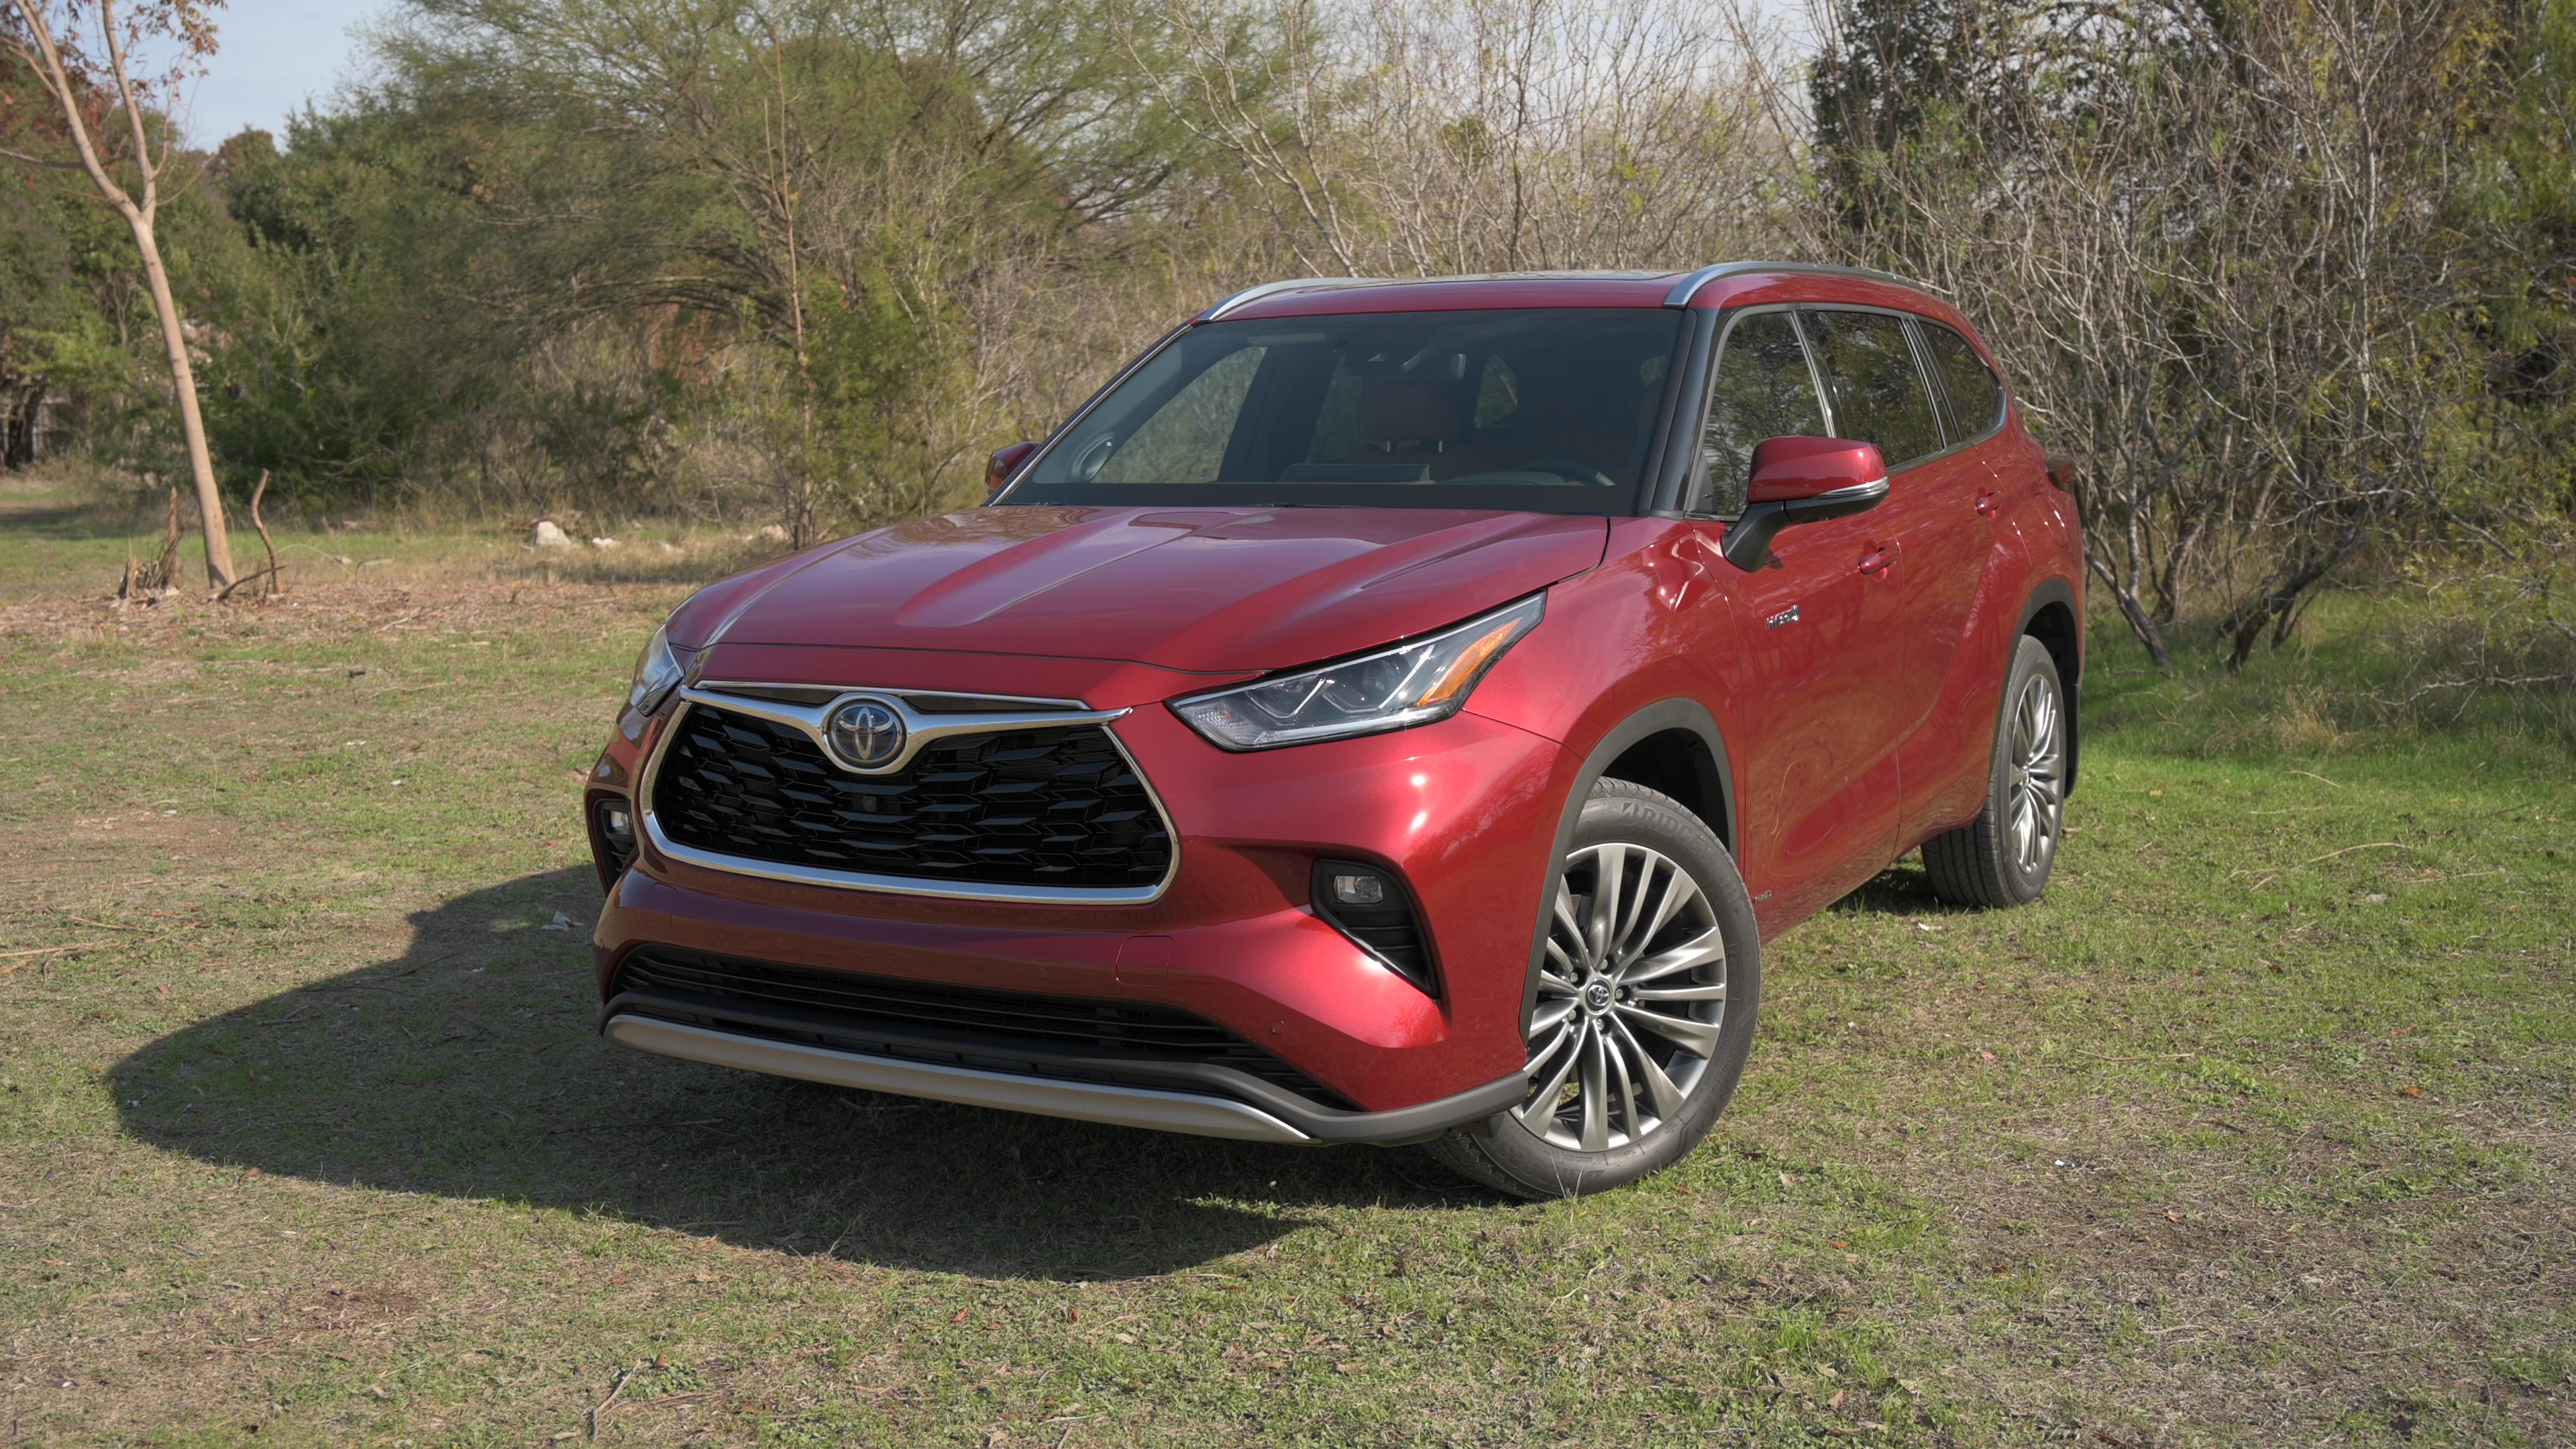 Video: 2020 Toyota Highlander: The original gets completely revamped